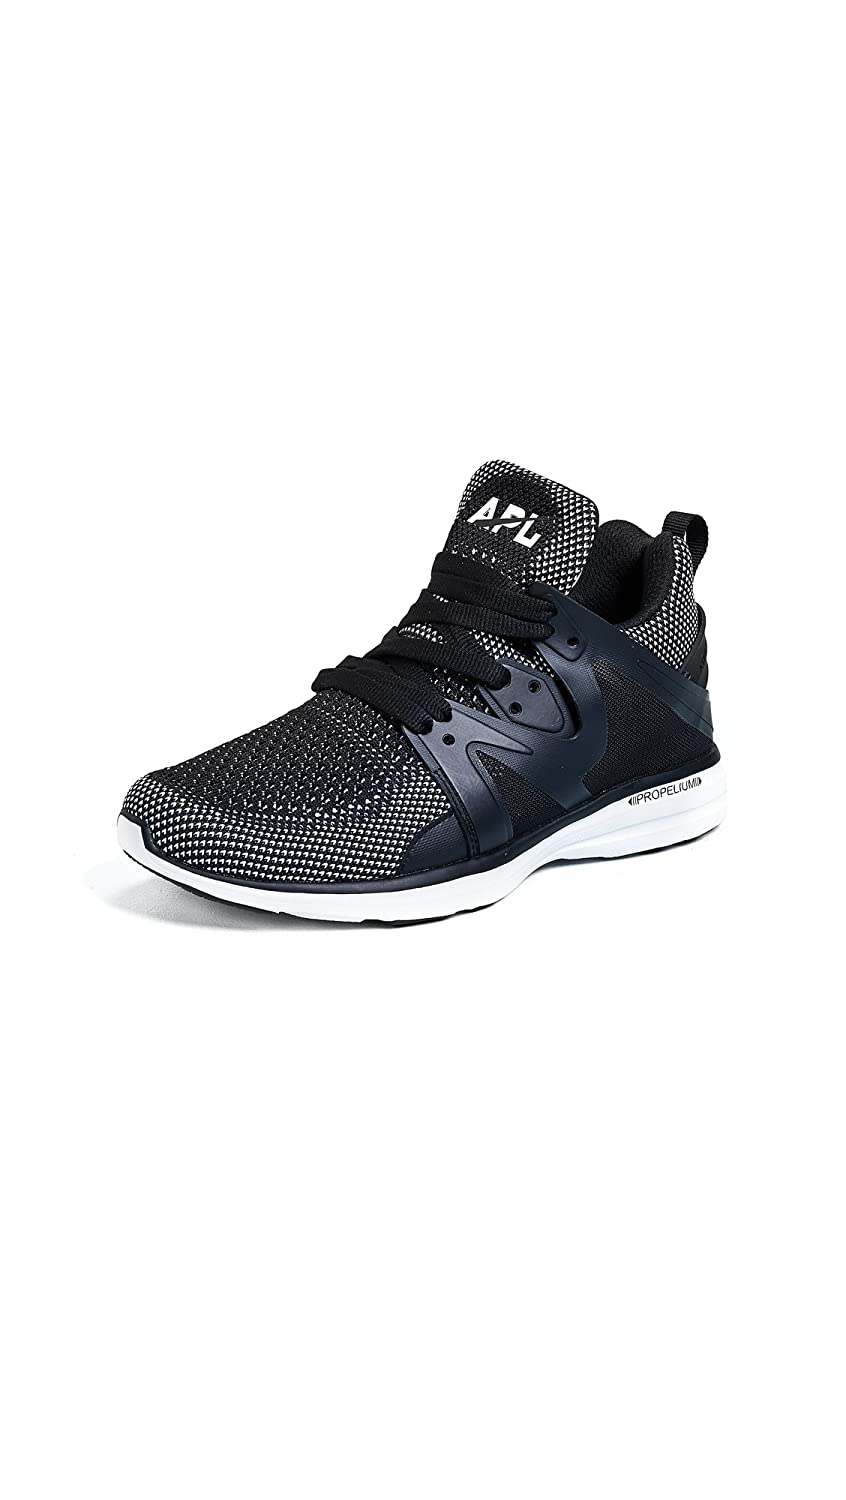 APL: Athletic Propulsion Labs Women's Ascend Sneakers B07FJZPRYM 5 B(M) US|Black/White